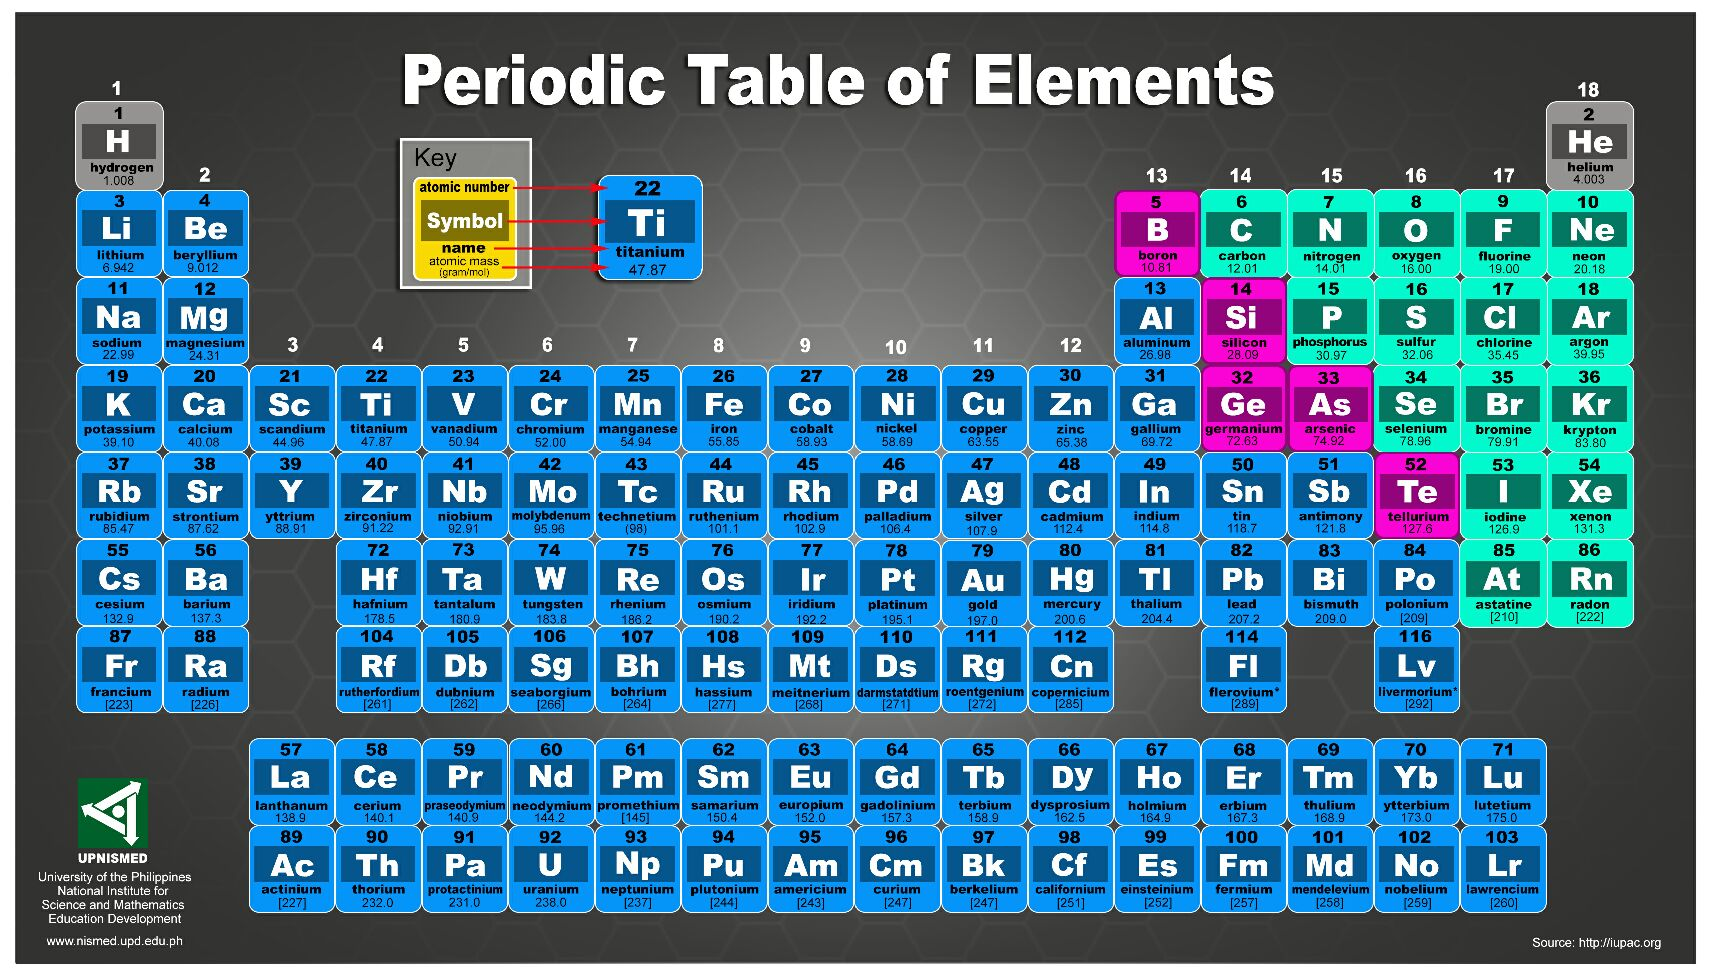 Elements furthermore Chalkboard Elements likewise Studentper X likewise Na Kclo Tube in addition Periodic Table. on periodic table elements